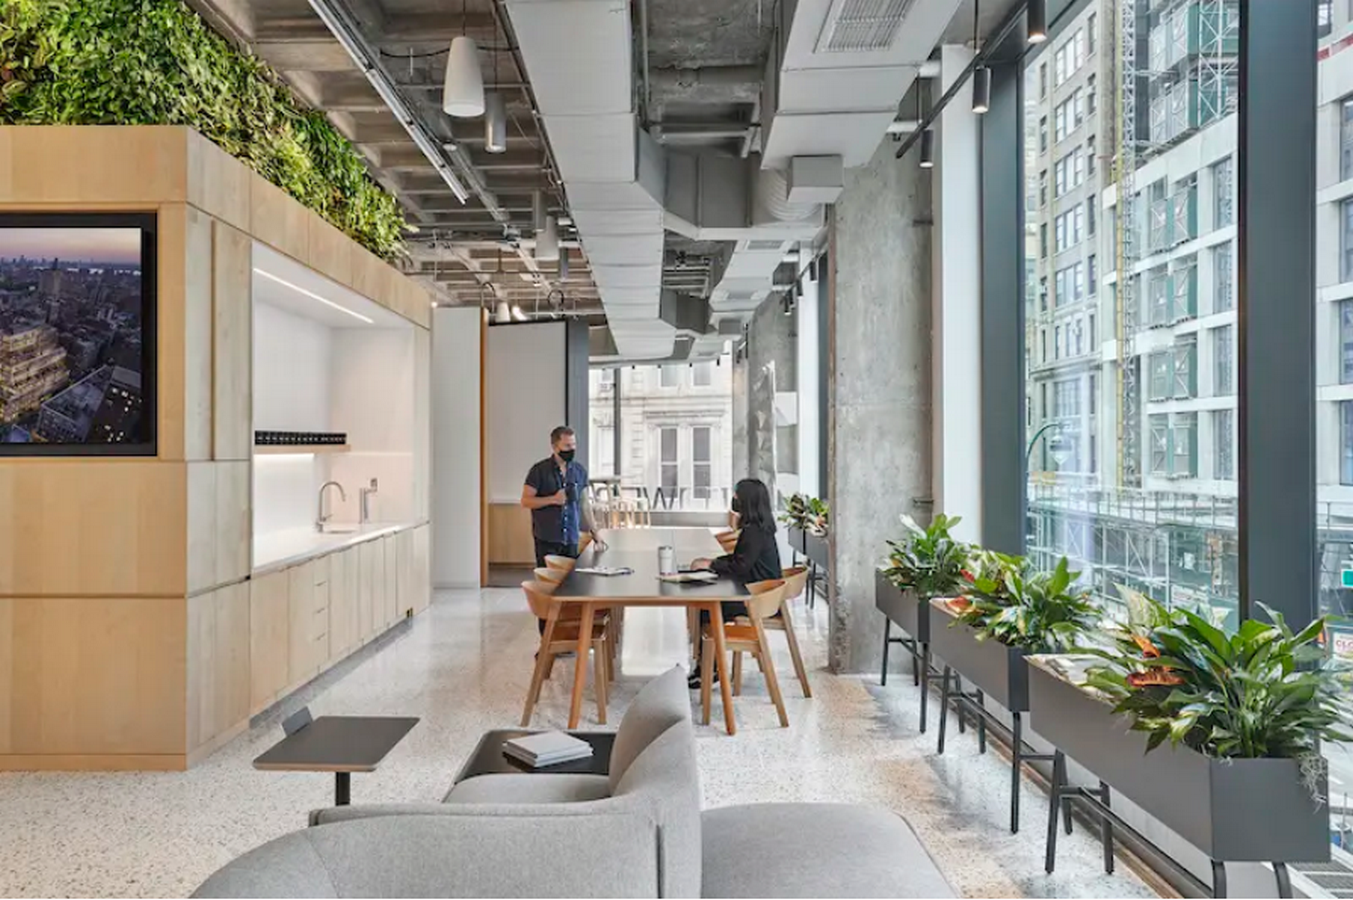 An Inside look at the Studios of Perkins+Will Sheet8